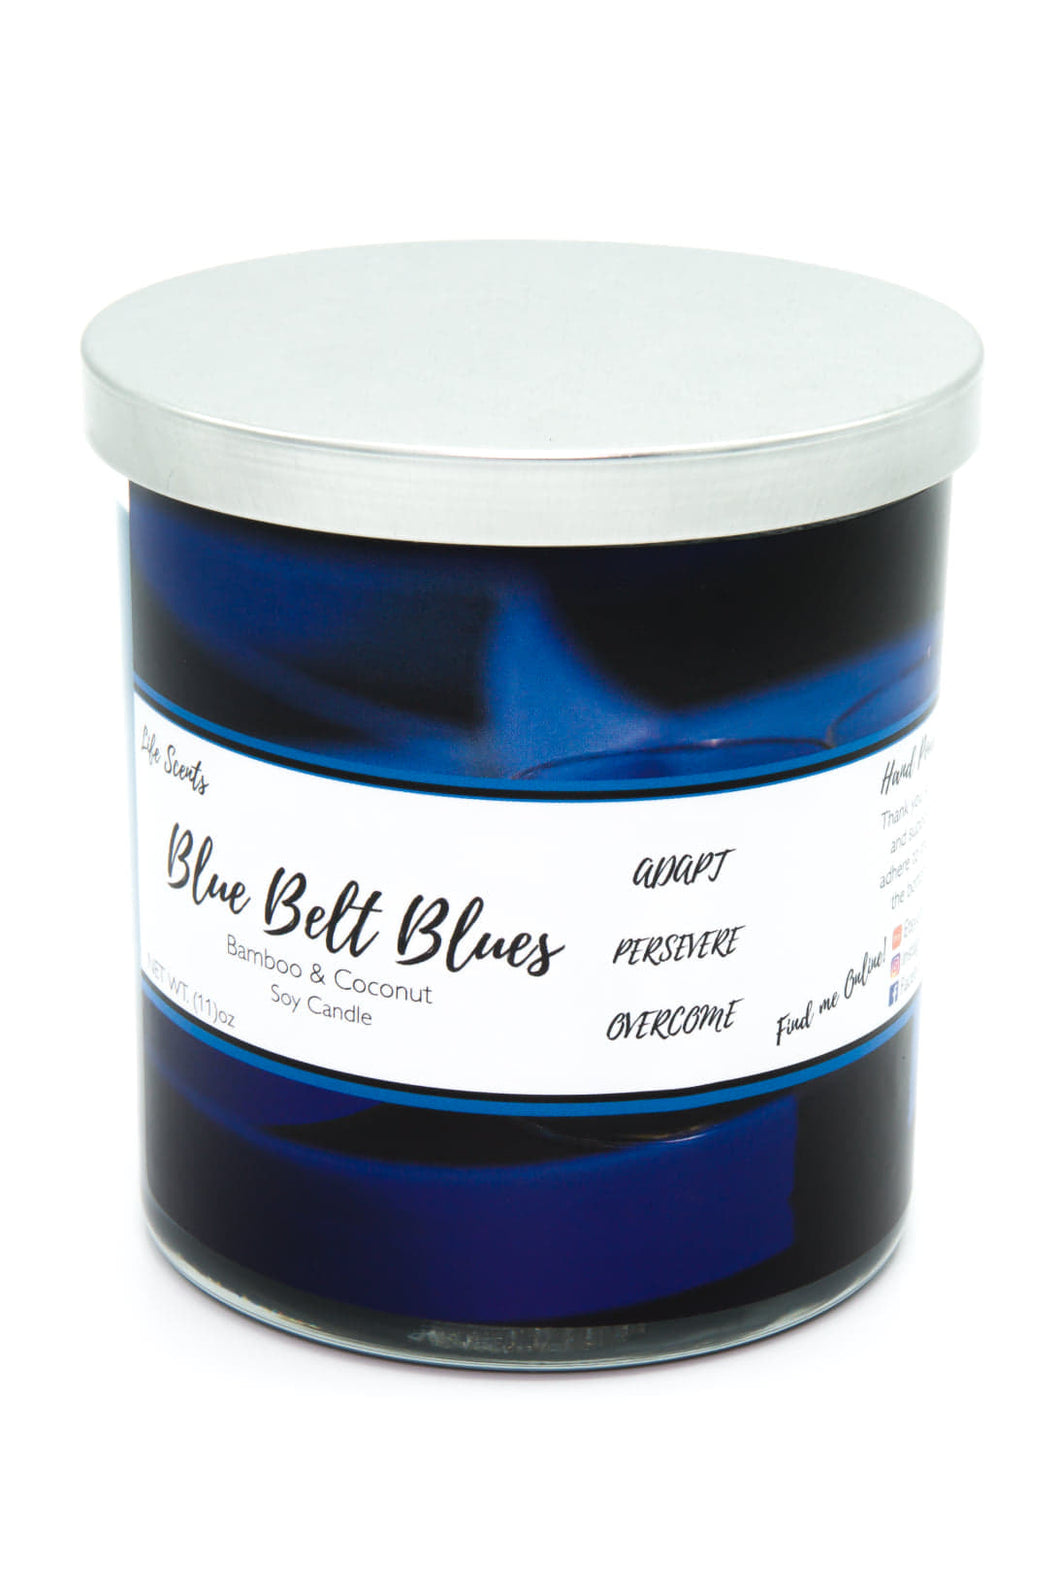 Blue Belt Blues - Bamboo & Coconut Scented Candle